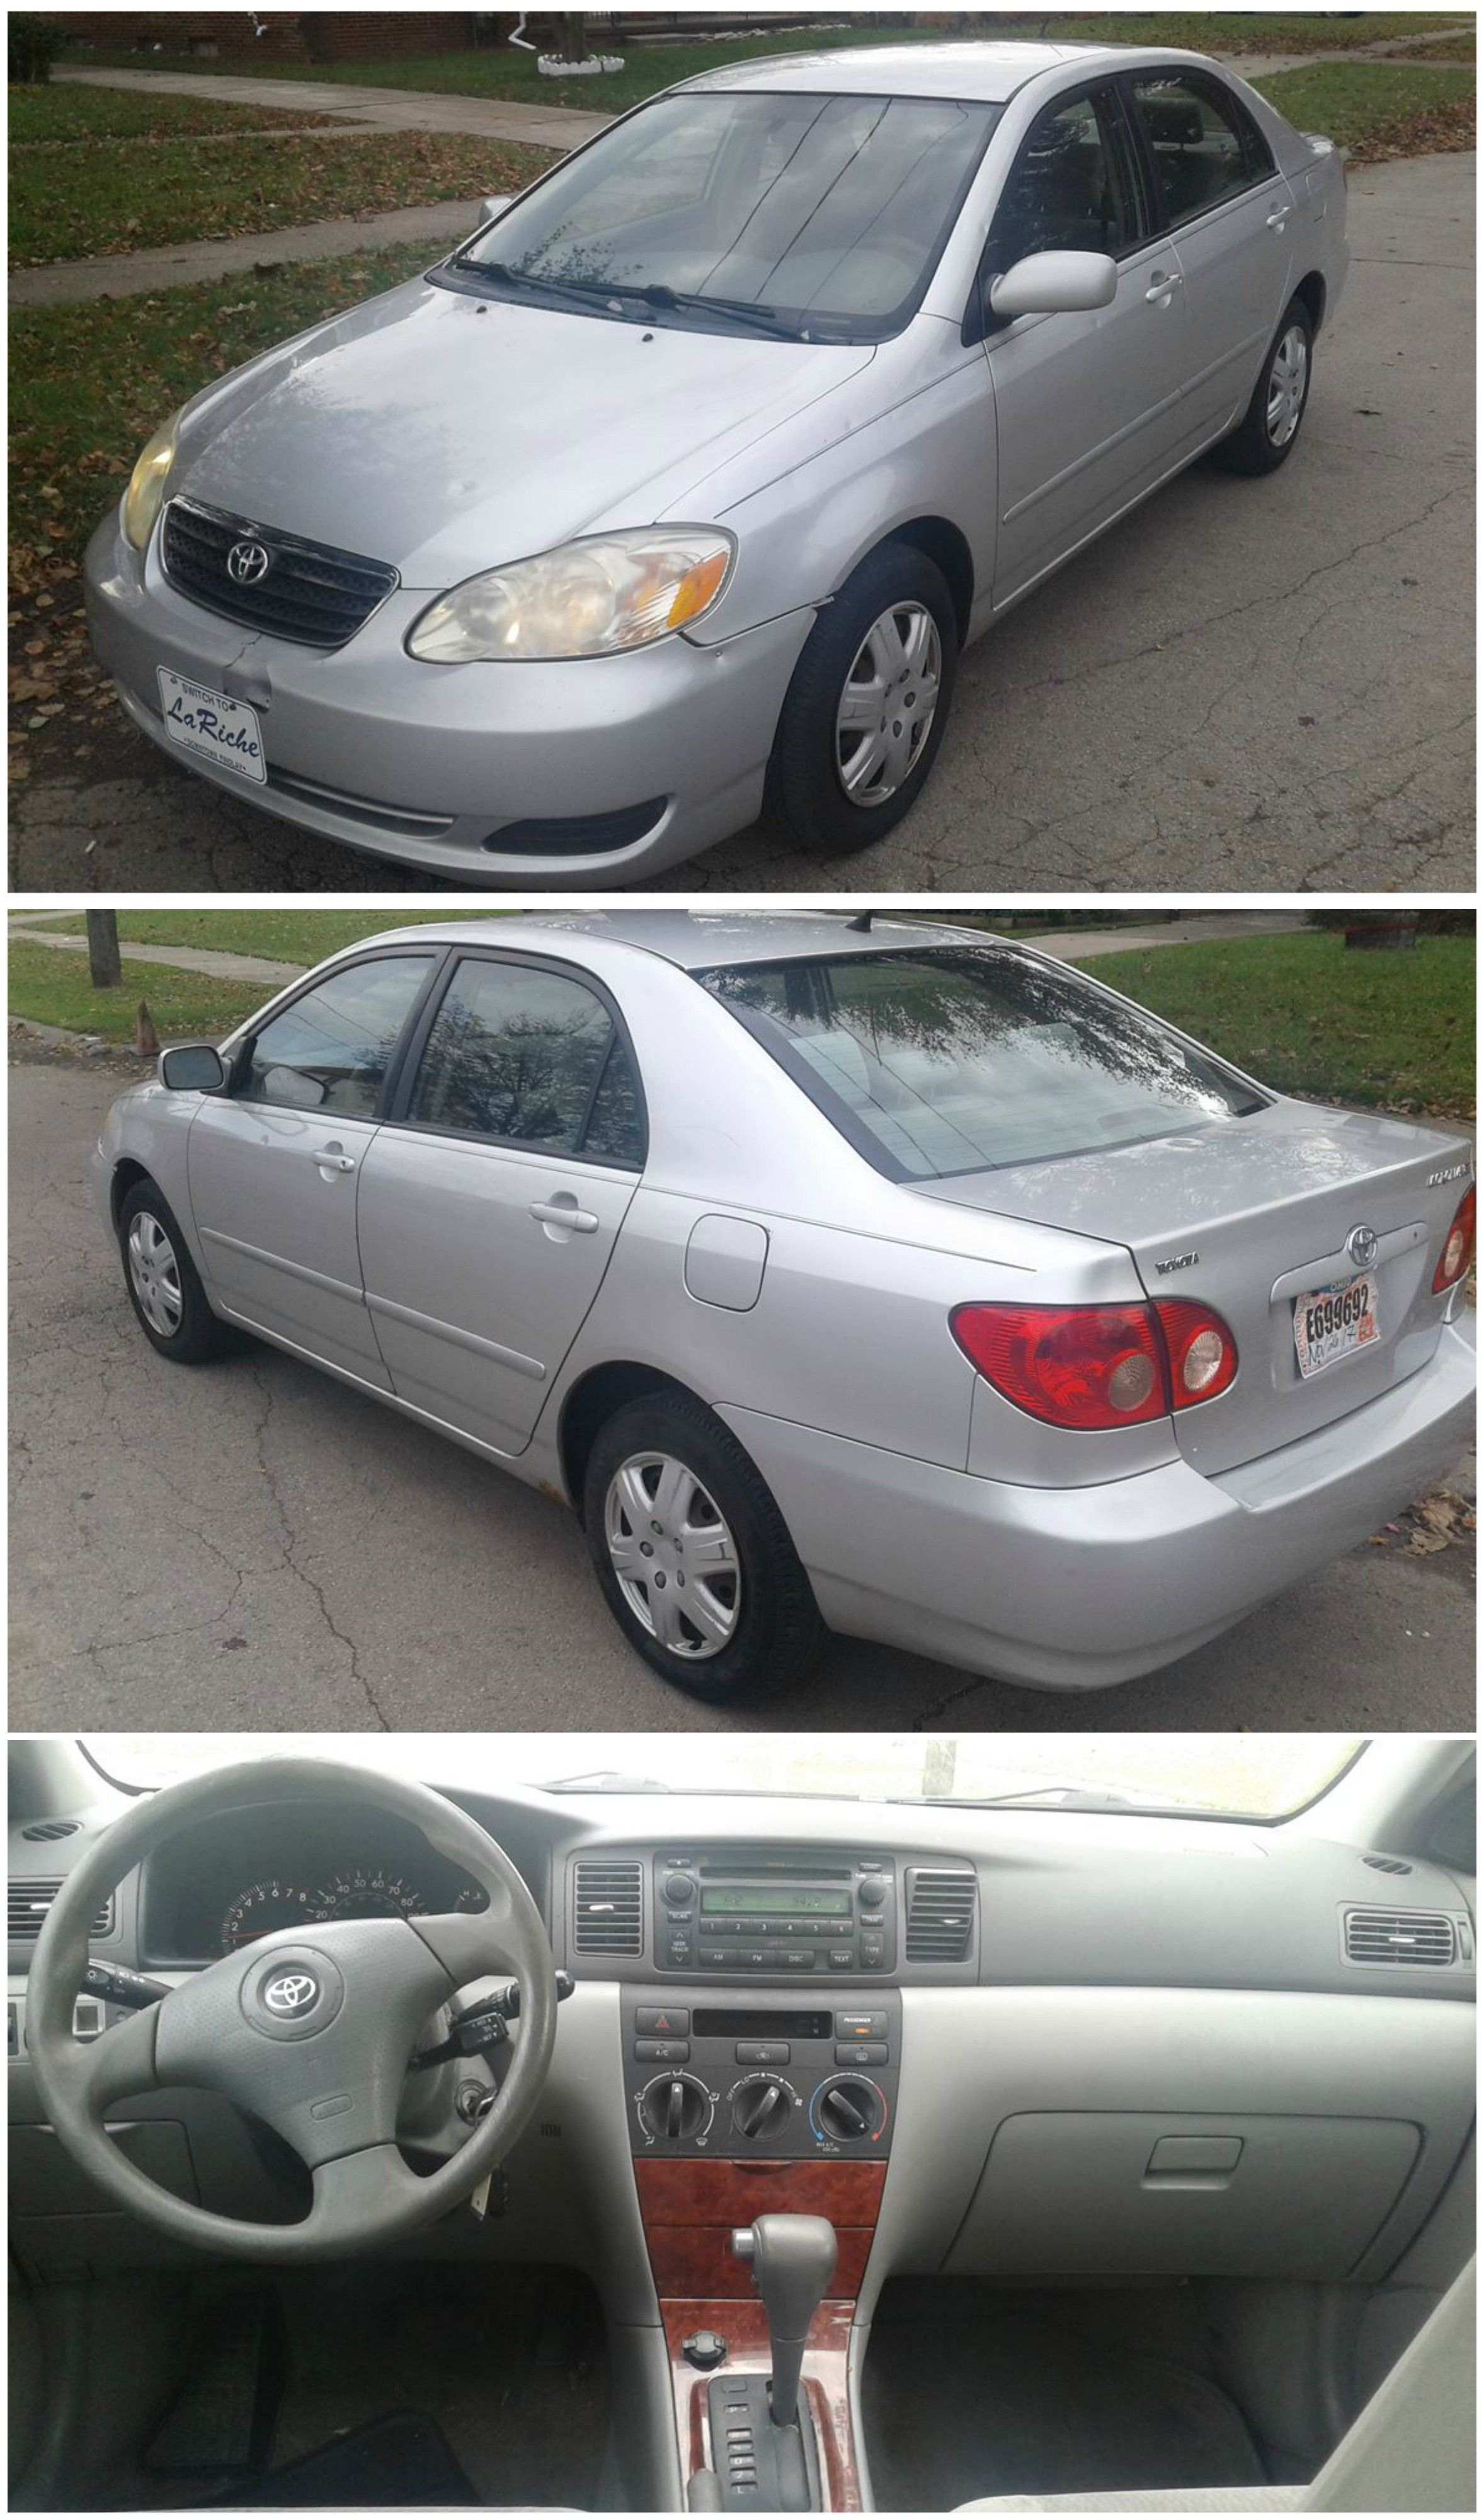 Used toyota Corolla for Sale Best Of 2006 toyota Corolla $2 500 Used Sedan Cars for Sale